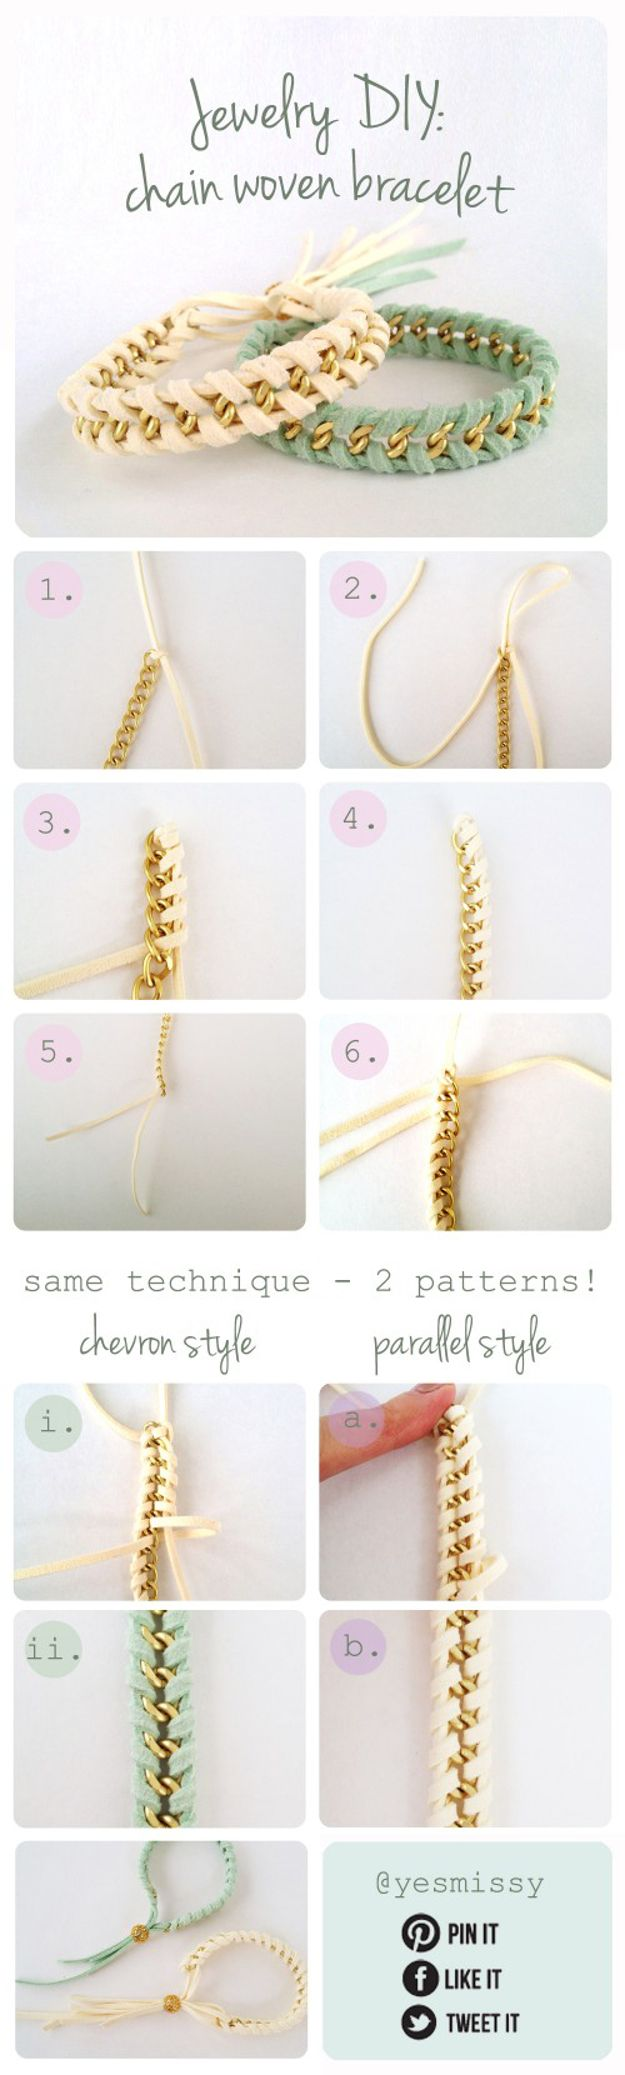 Braided Chain DIY Bracelets | This is taking your friendship bracelet to a whole new level. #DIYReady DIYReady.com